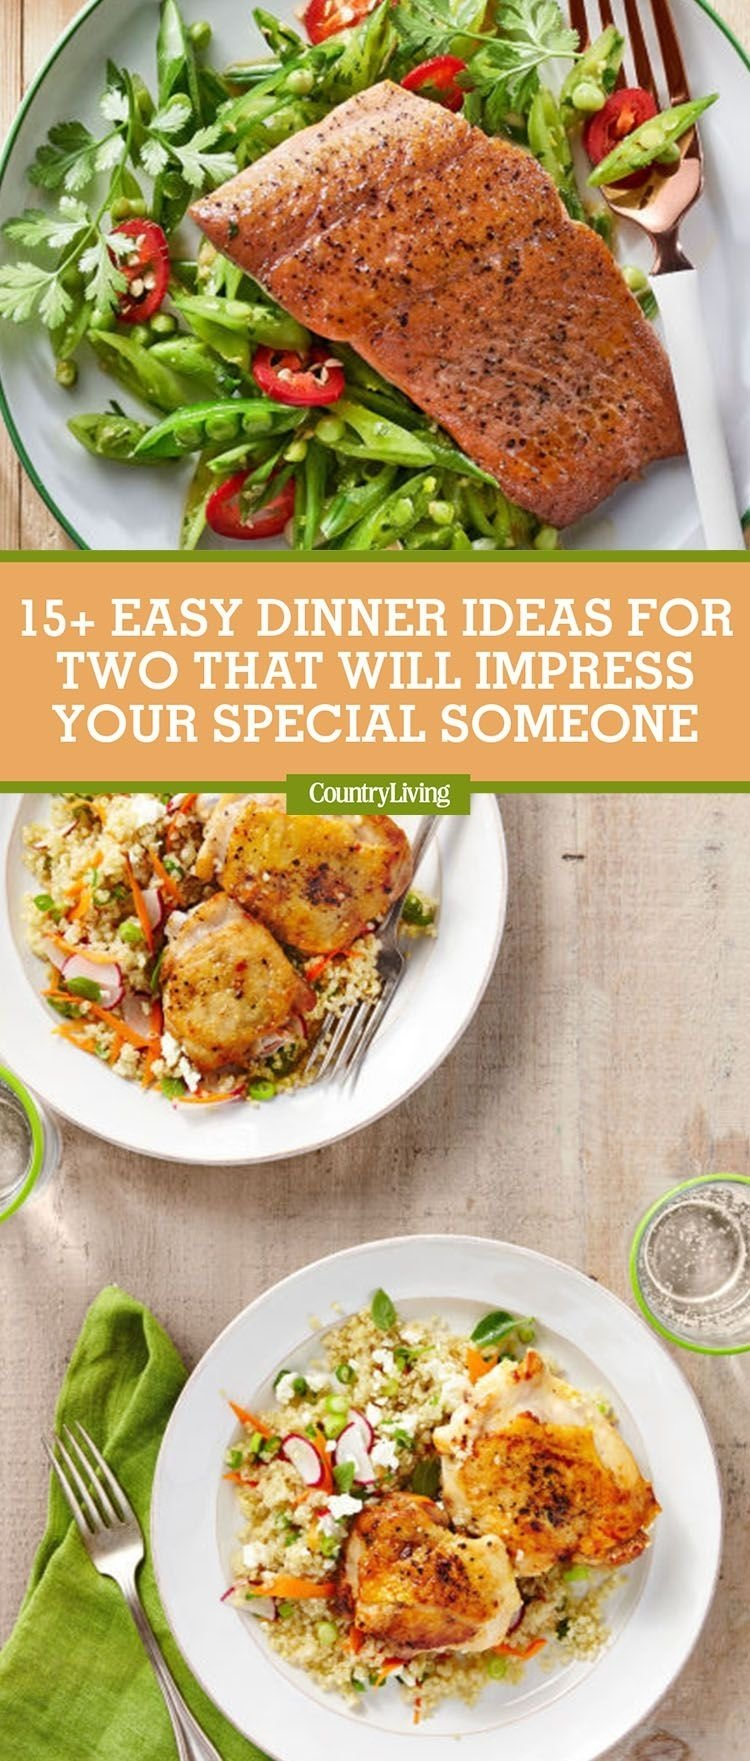 10 Famous Weeknight Dinner Ideas For Two 17 easy dinner ideas for two romantic dinner for two recipes 3 2020